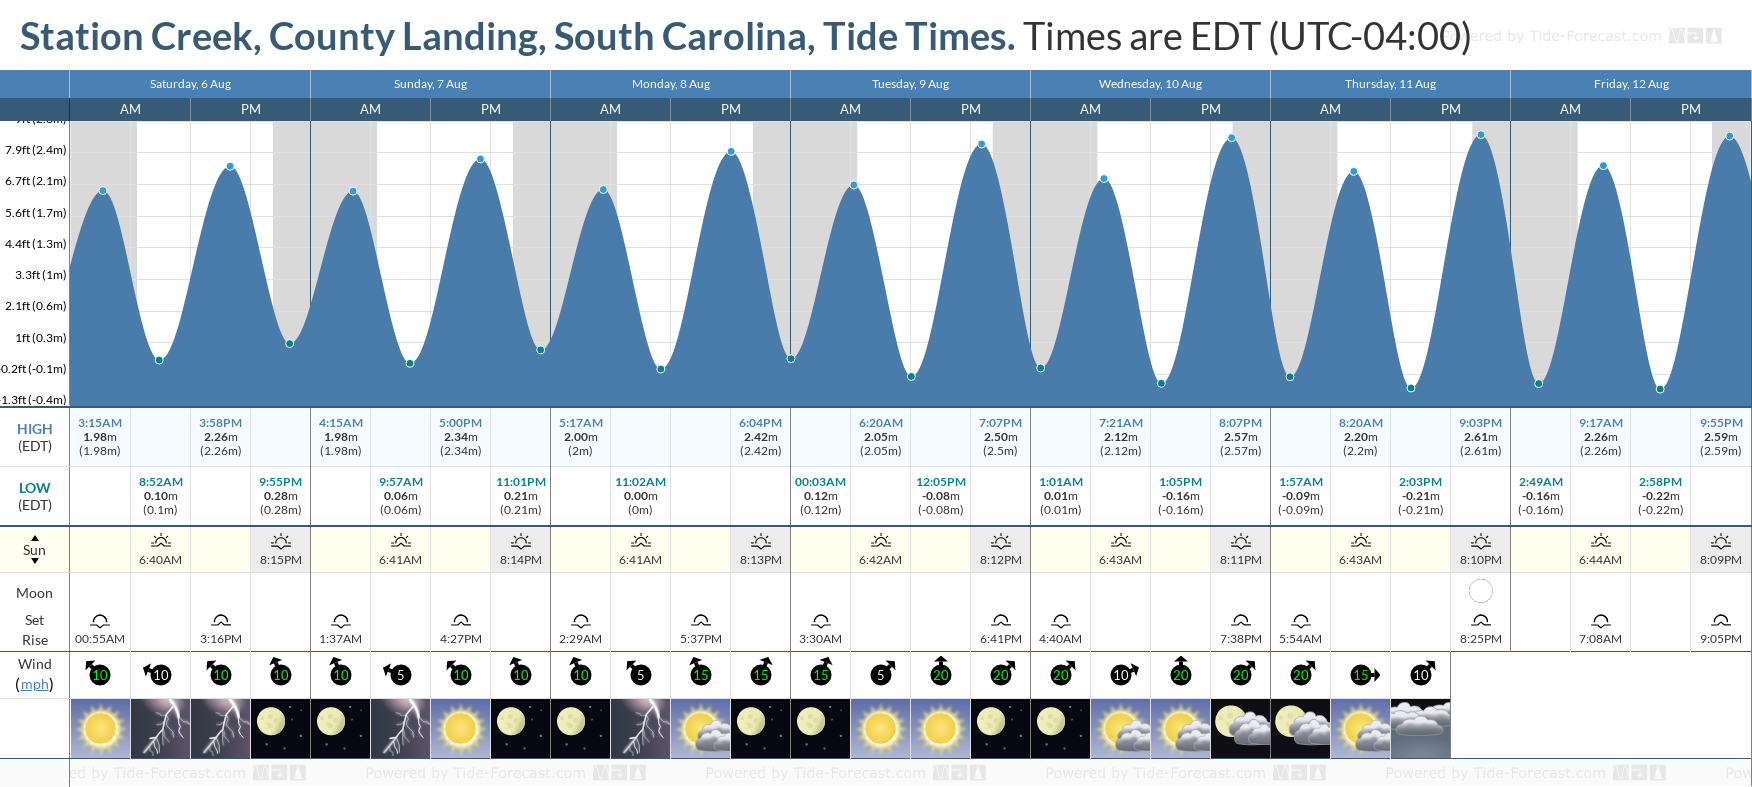 Station Creek, County Landing, South Carolina Tide Chart including high and low tide tide times for the next 7 days